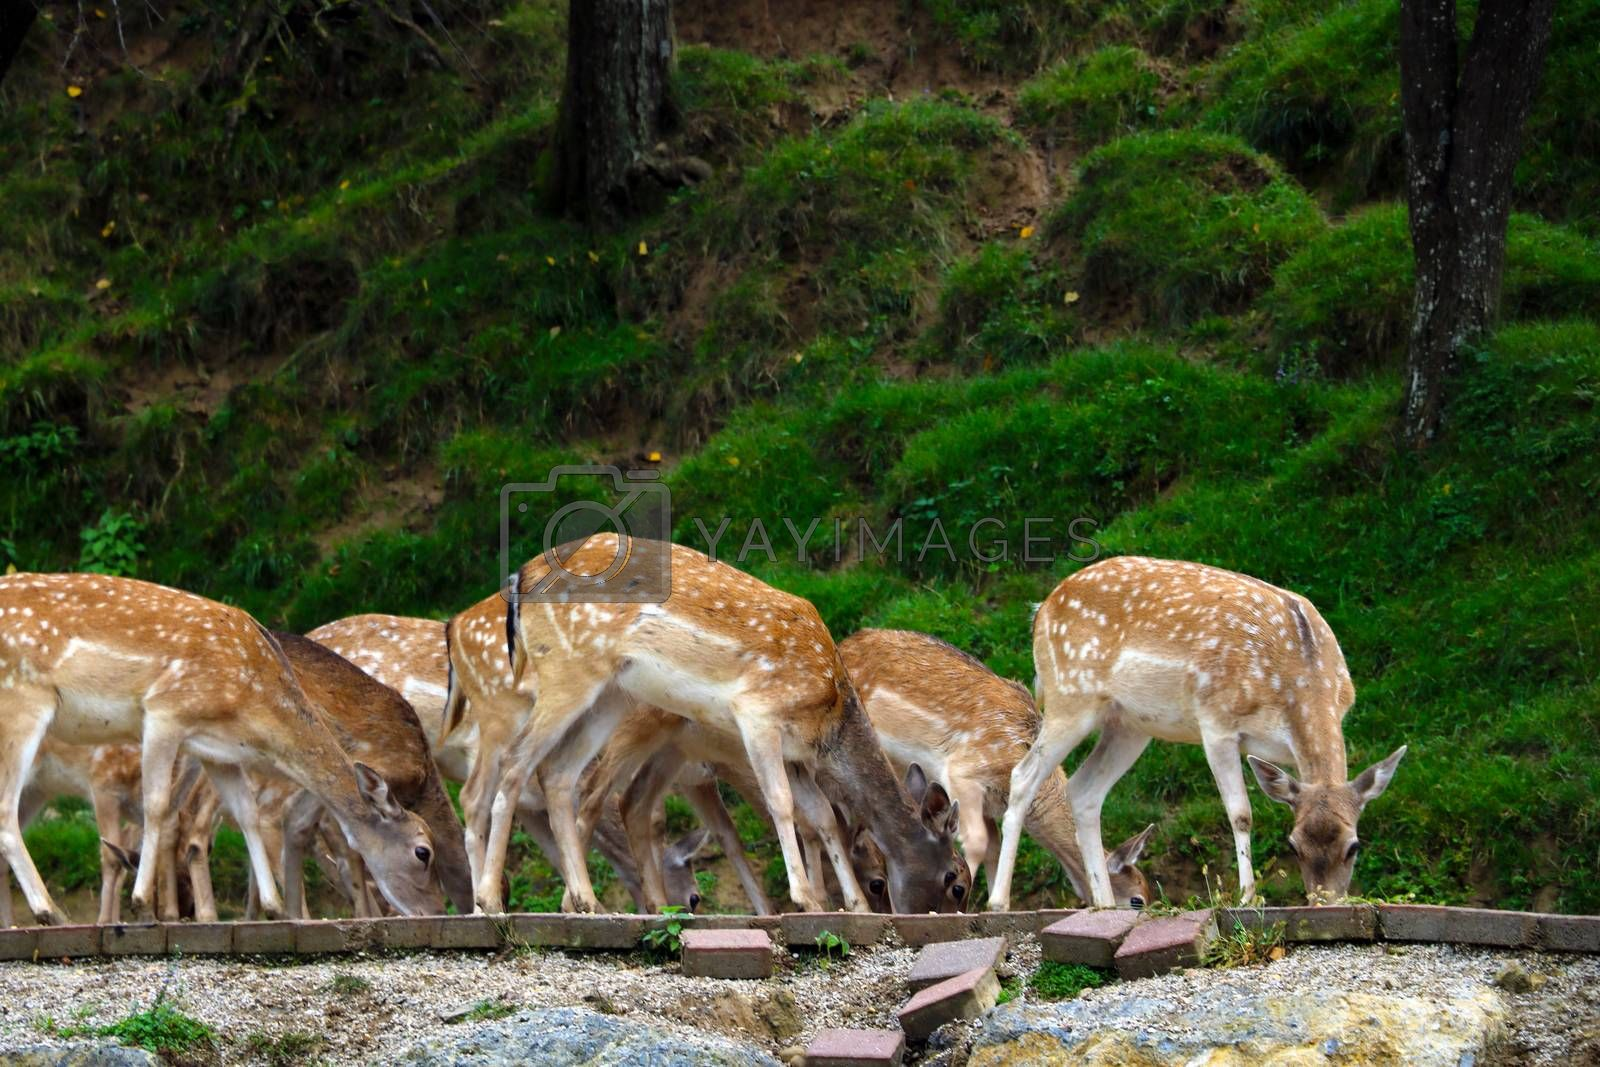 A herd of sika deer while eating